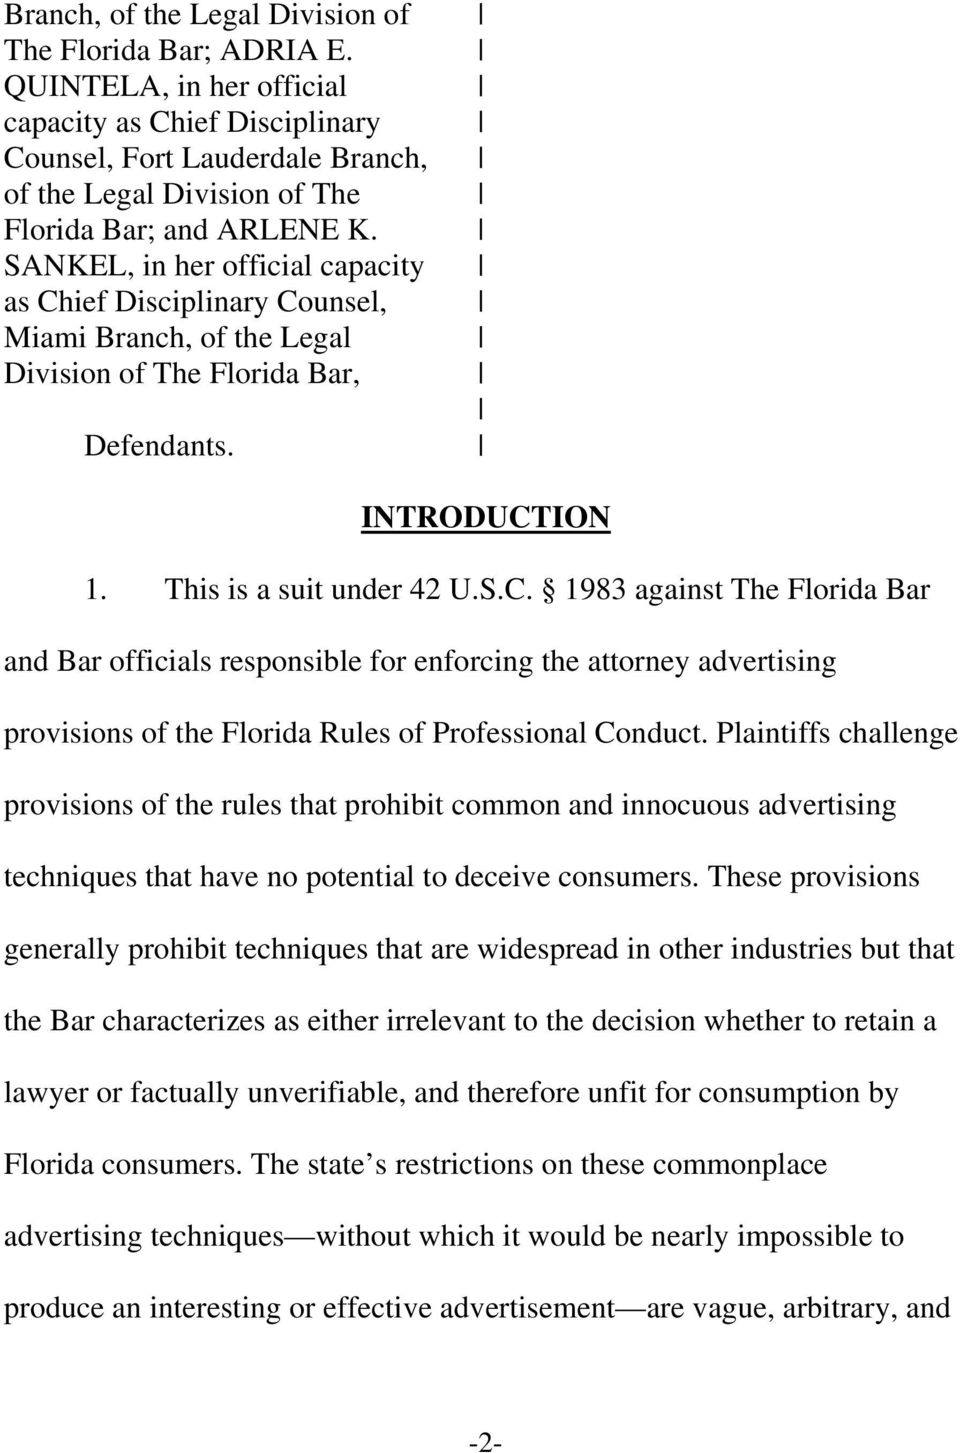 SANKEL, in her official capacity as Chief Disciplinary Counsel, Miami Branch, of the Legal Division of The Florida Bar, Defendants. INTRODUCTION 1. This is a suit under 42 U.S.C. 1983 against The Florida Bar and Bar officials responsible for enforcing the attorney advertising provisions of the Florida Rules of Professional Conduct.